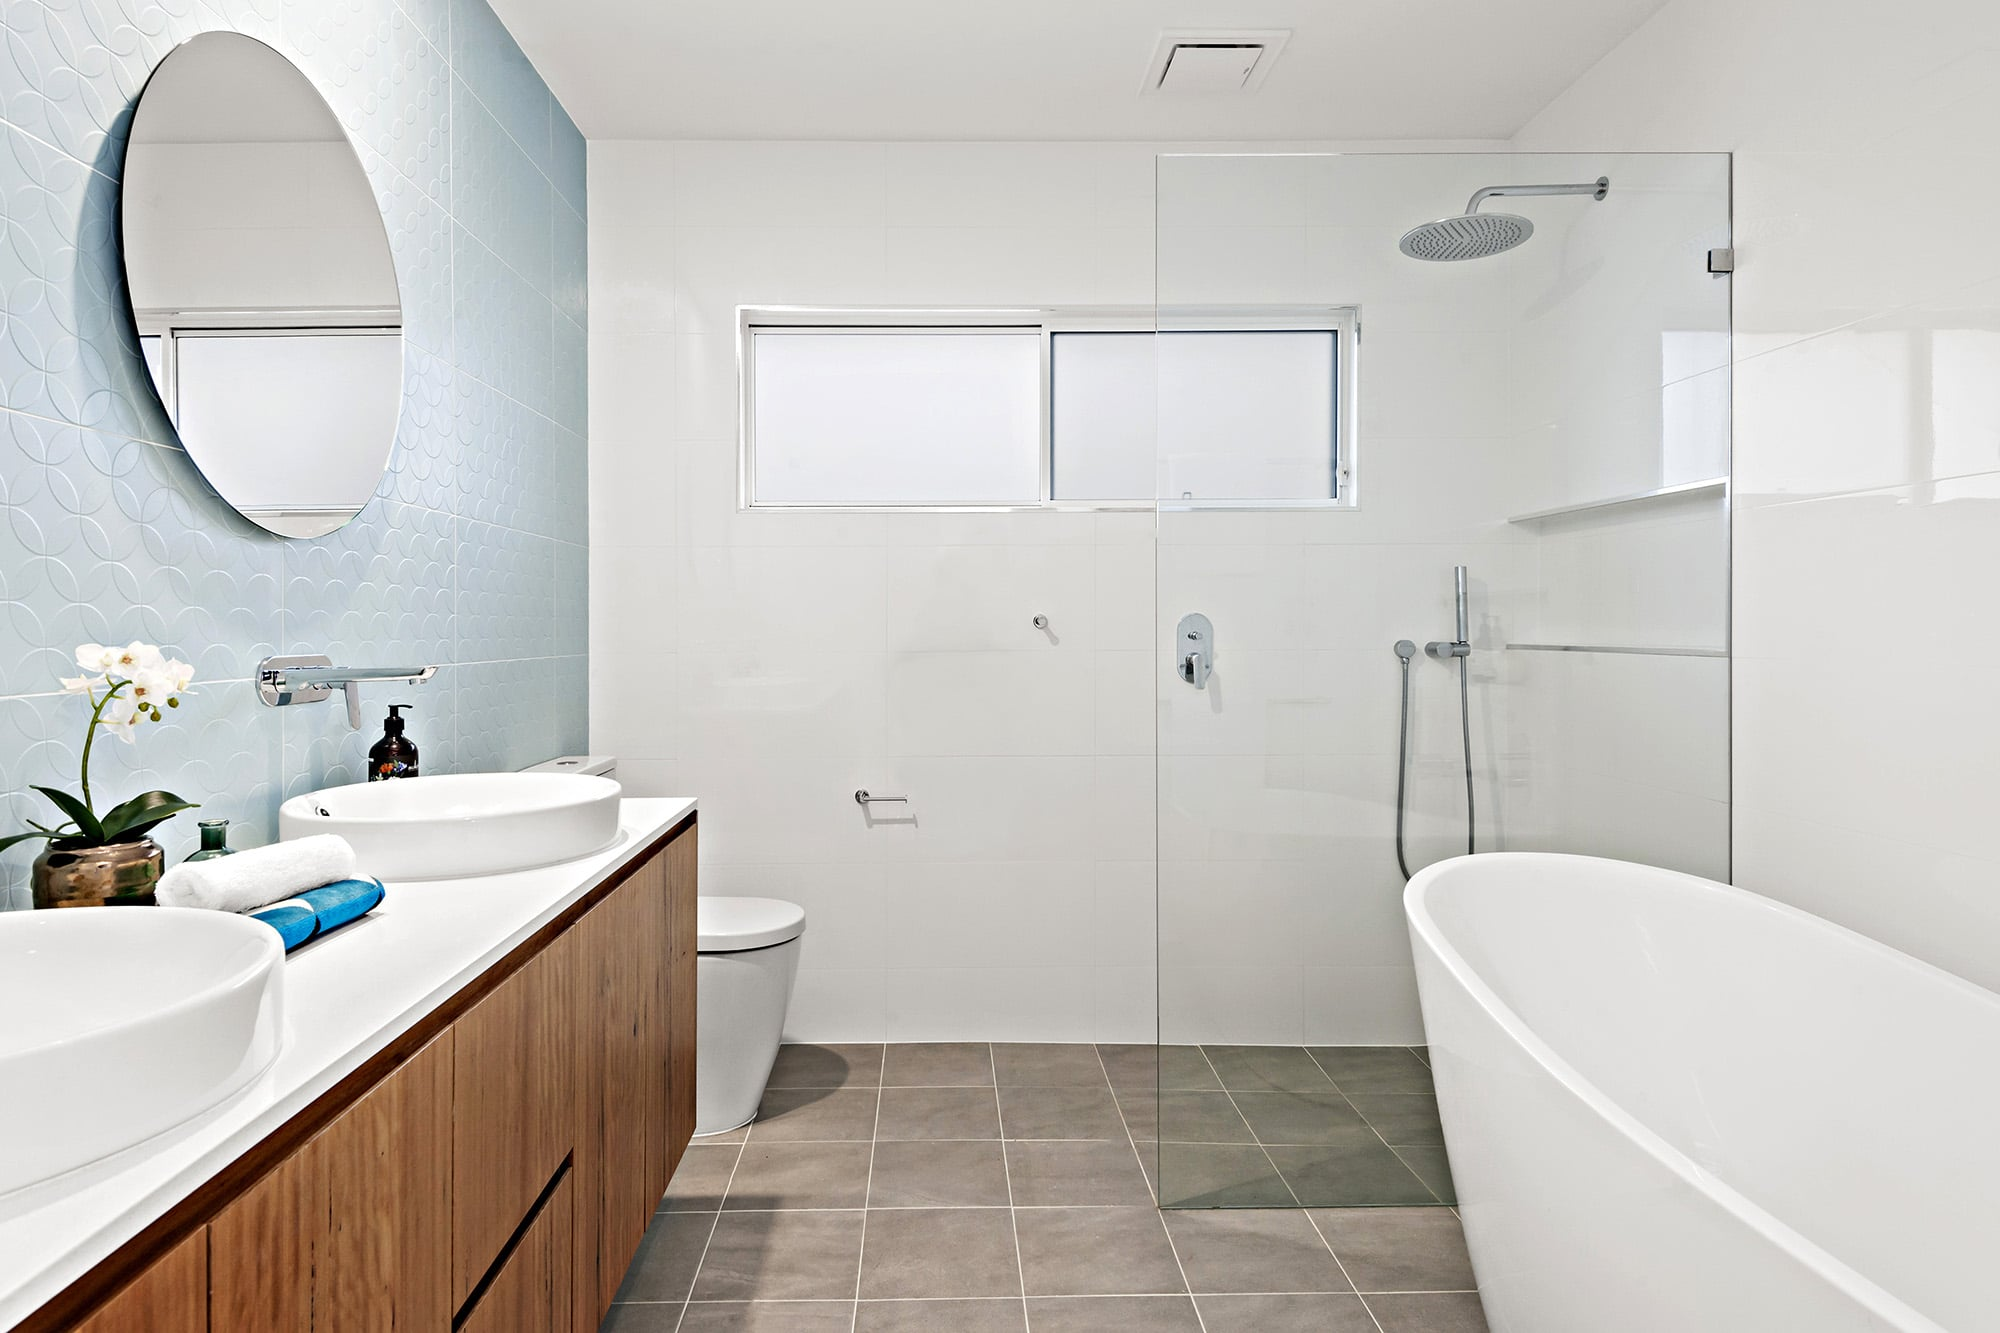 Bligh Street | Caves Beach - https://www.peonyandsilk.com.au/wp-content/uploads/2019/03/9-Bathroom.jpg